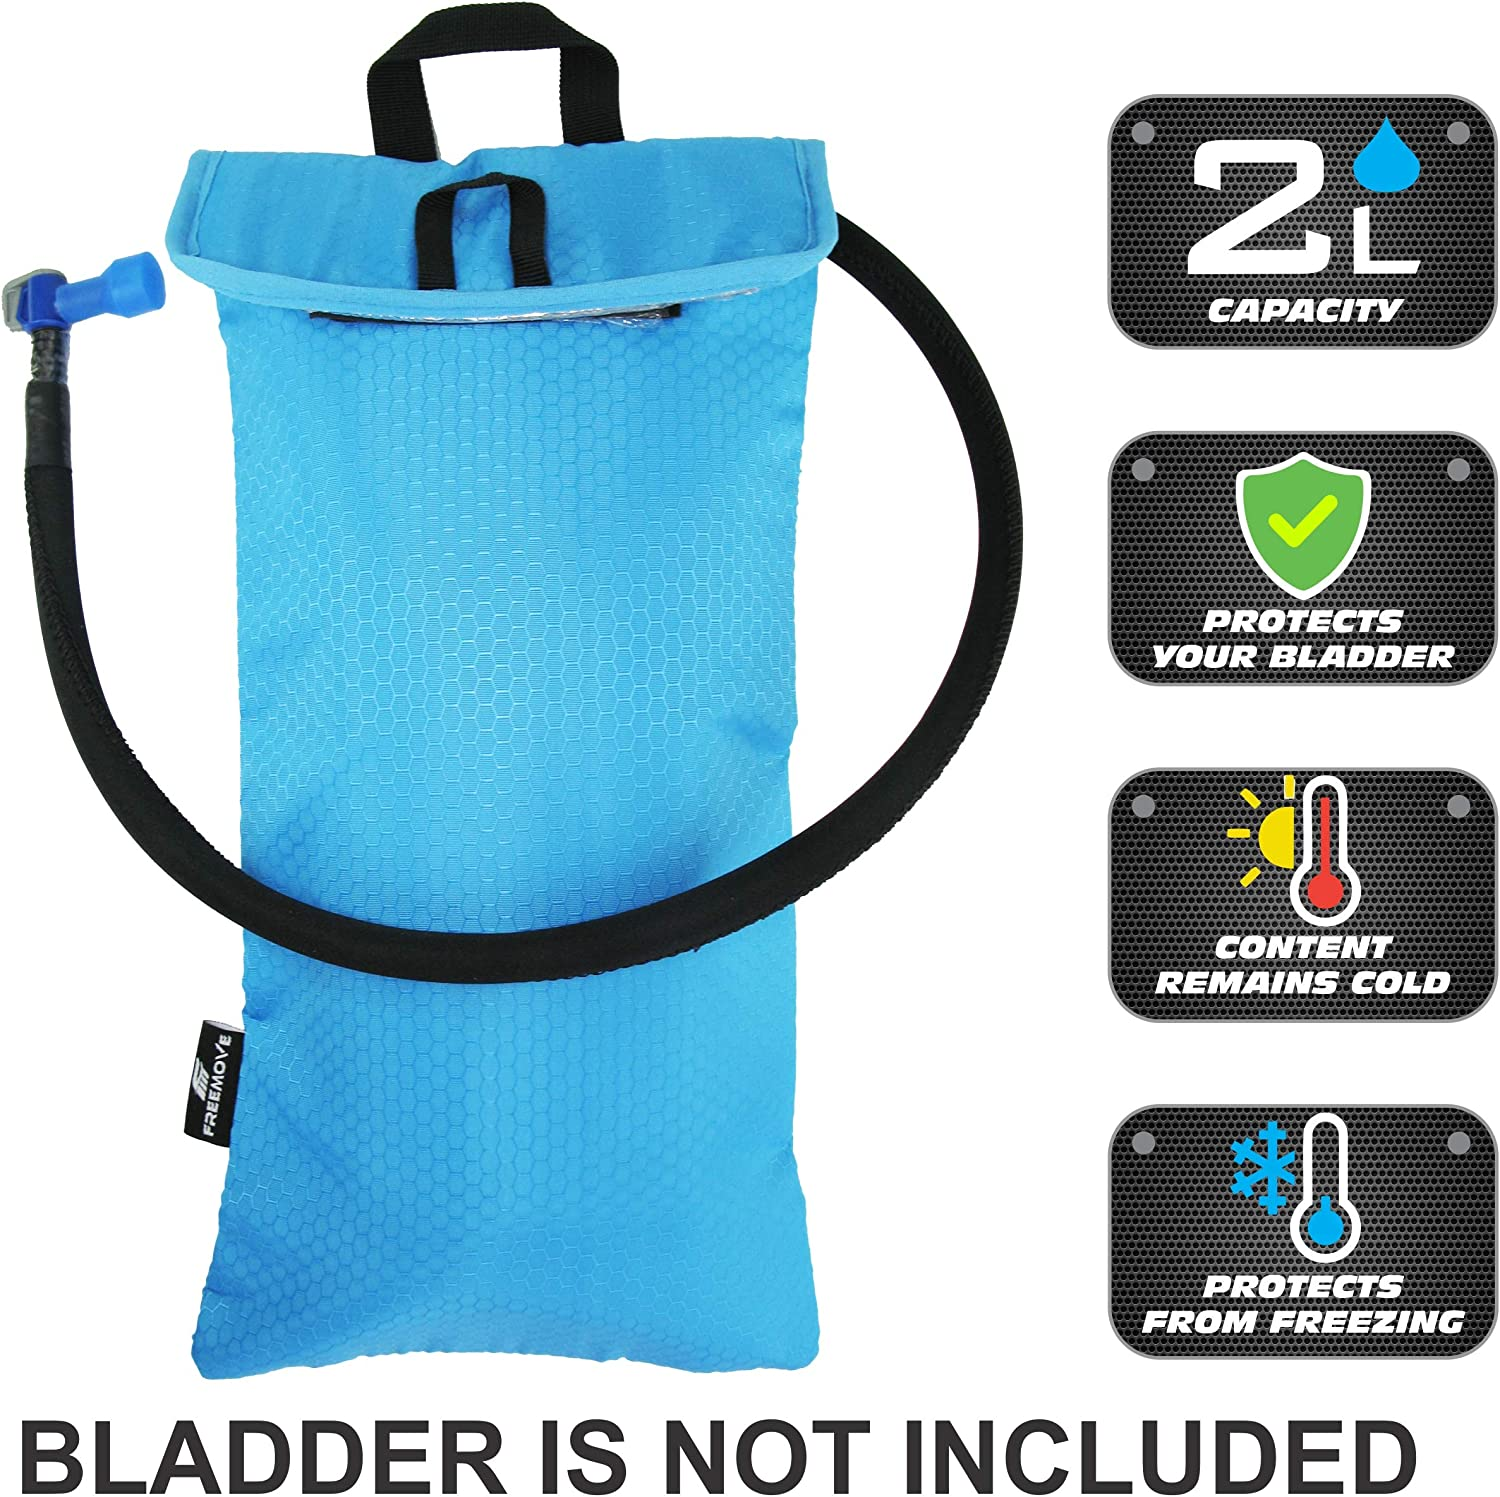 FREEMOVE Cooler Bag - Protective Sleeve for 2L or 3L Hydration Water Bladder | Keeps Water Cool & Protects The Bladder | Lightweight & Water Resistant | Bladder is NOT Included